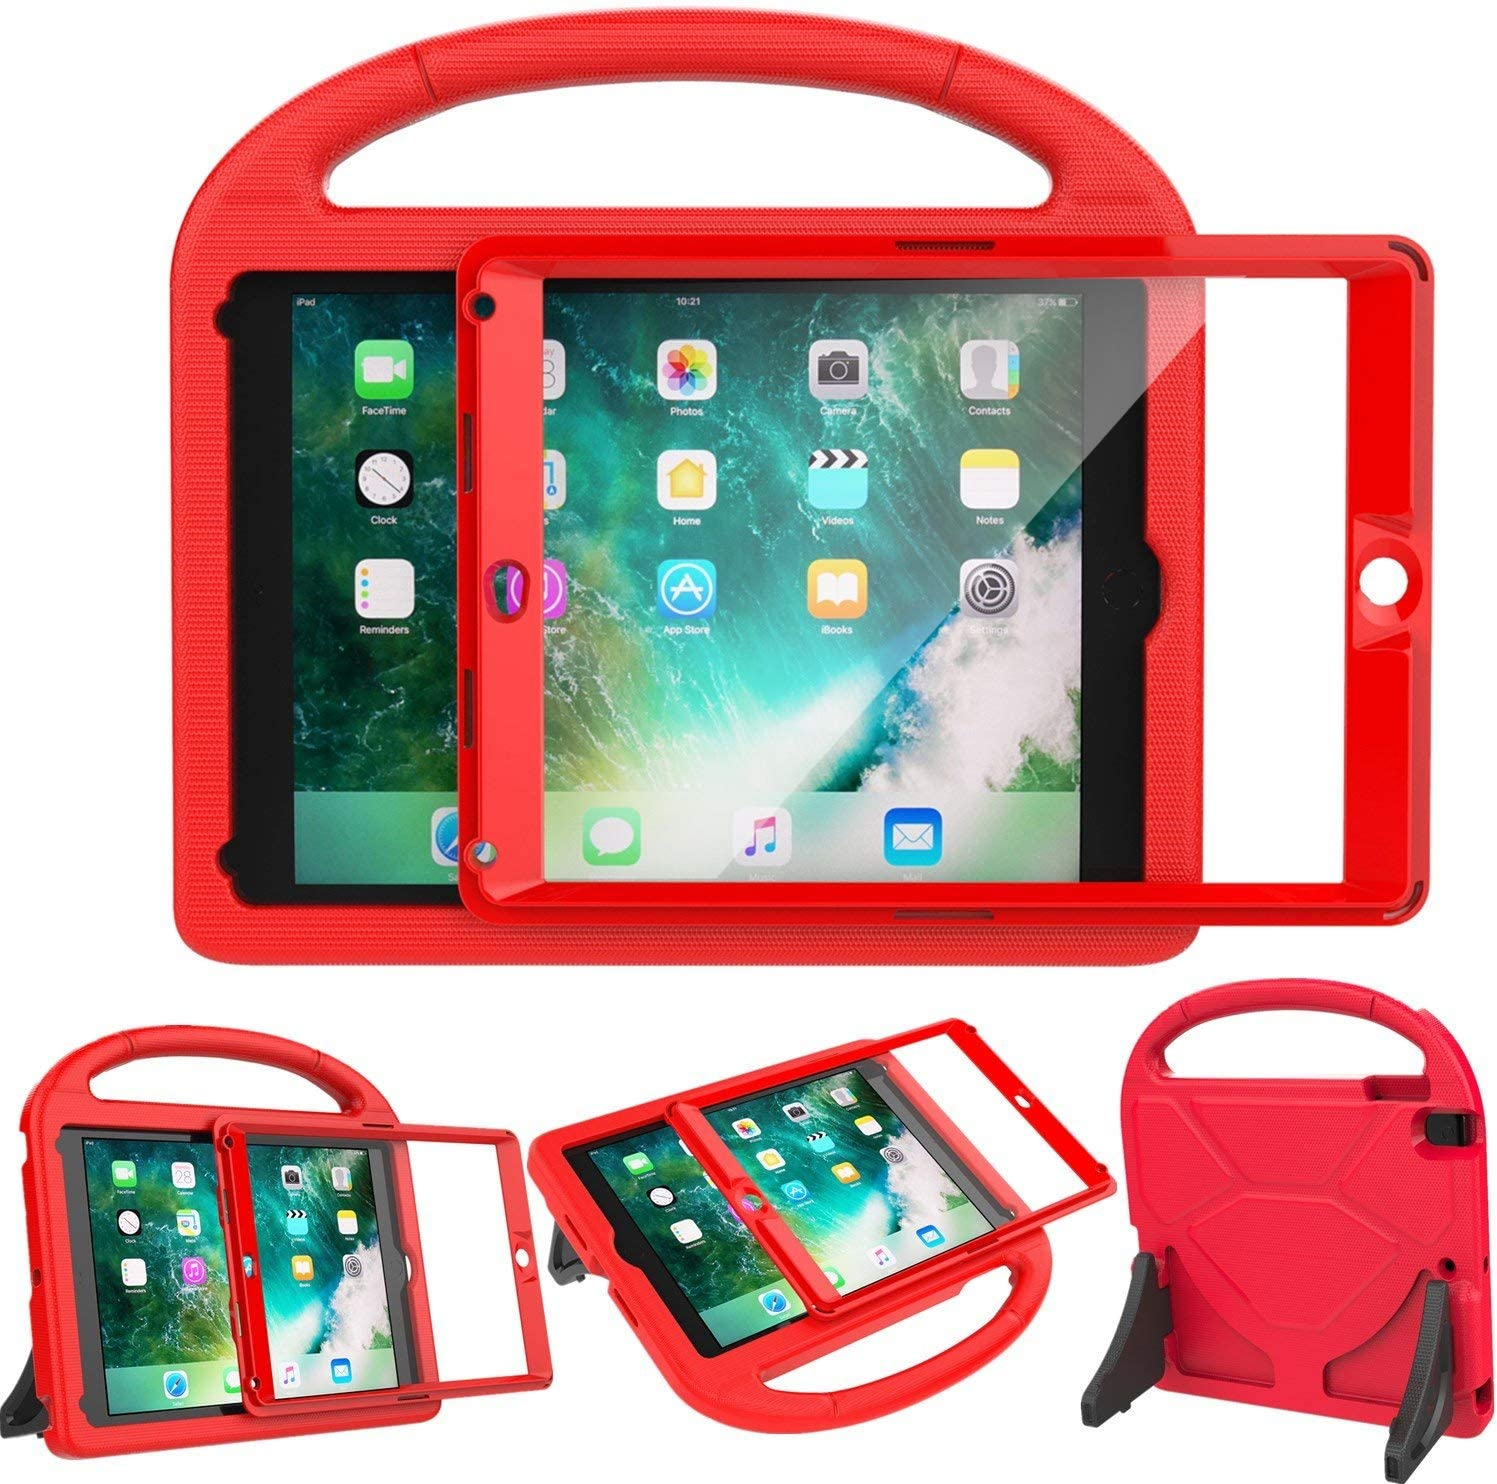 LEDNICEKER Kids Case for iPad 9.7 2018/2017 - Built-in Screen Protector Shockproof Handle Friendly Foldable Stand Kids Case for iPad 9.7 2017/2018 (ipad 5&6) - Red